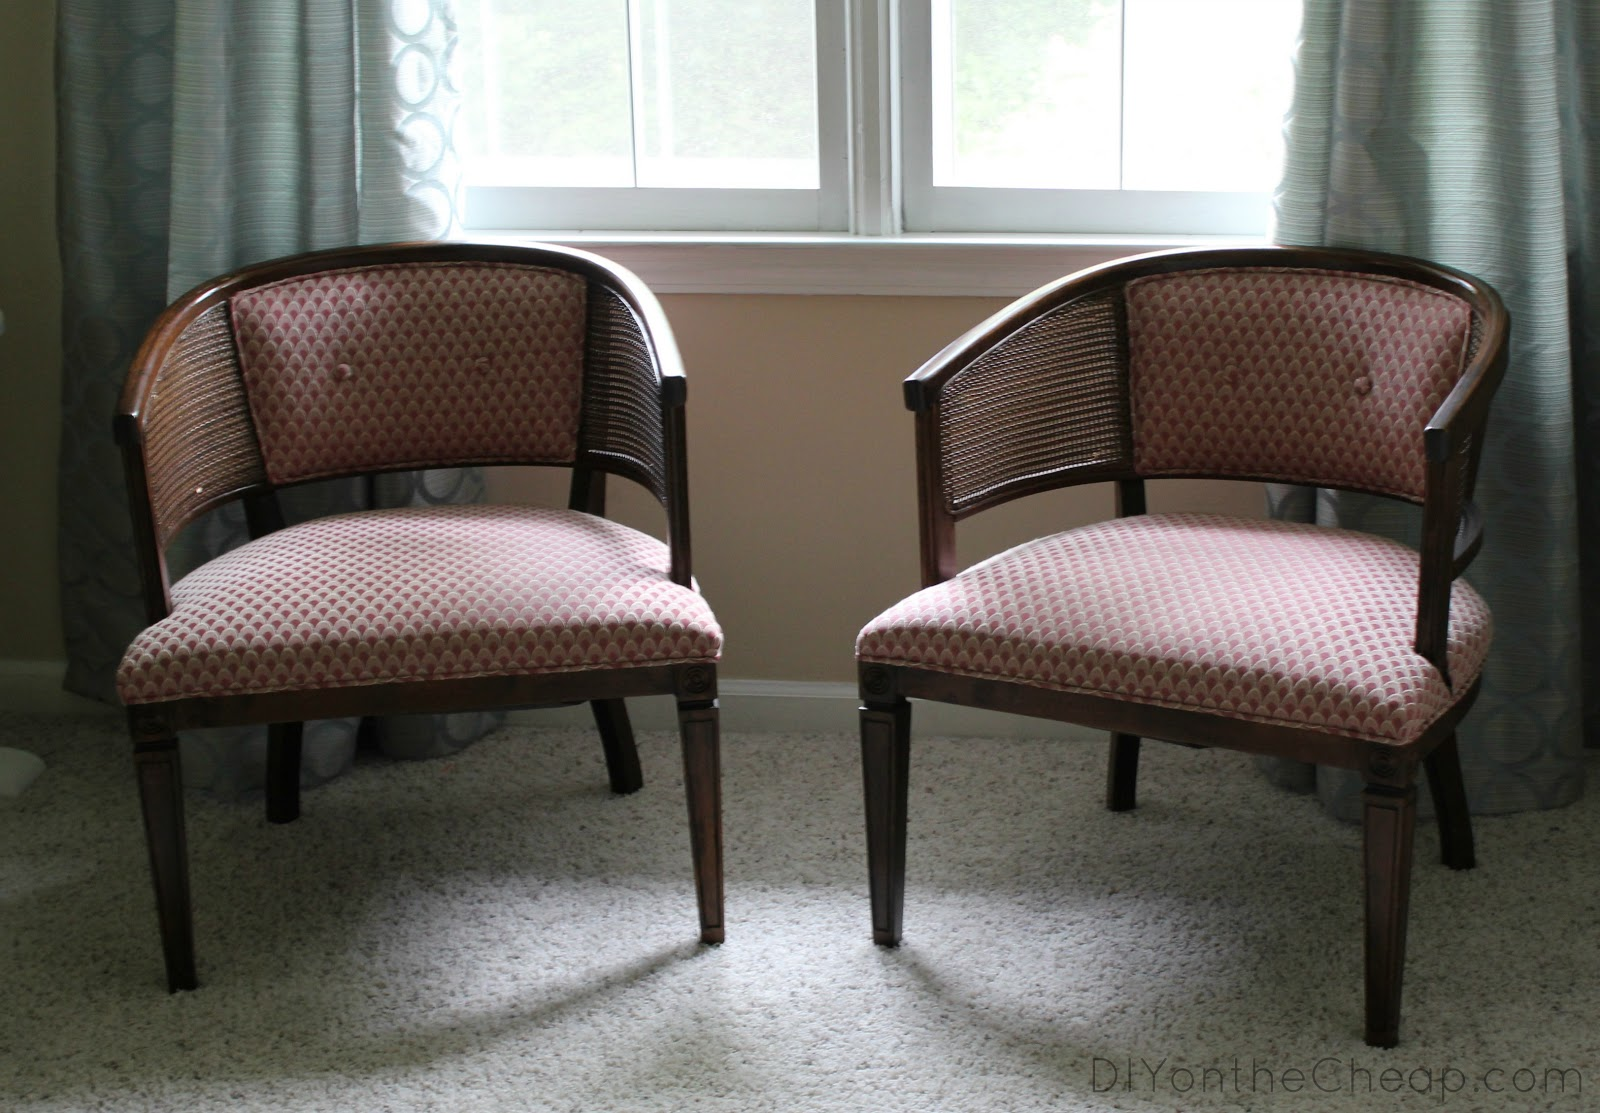 Superieur Reupholstered Chairs: Before U0026 After